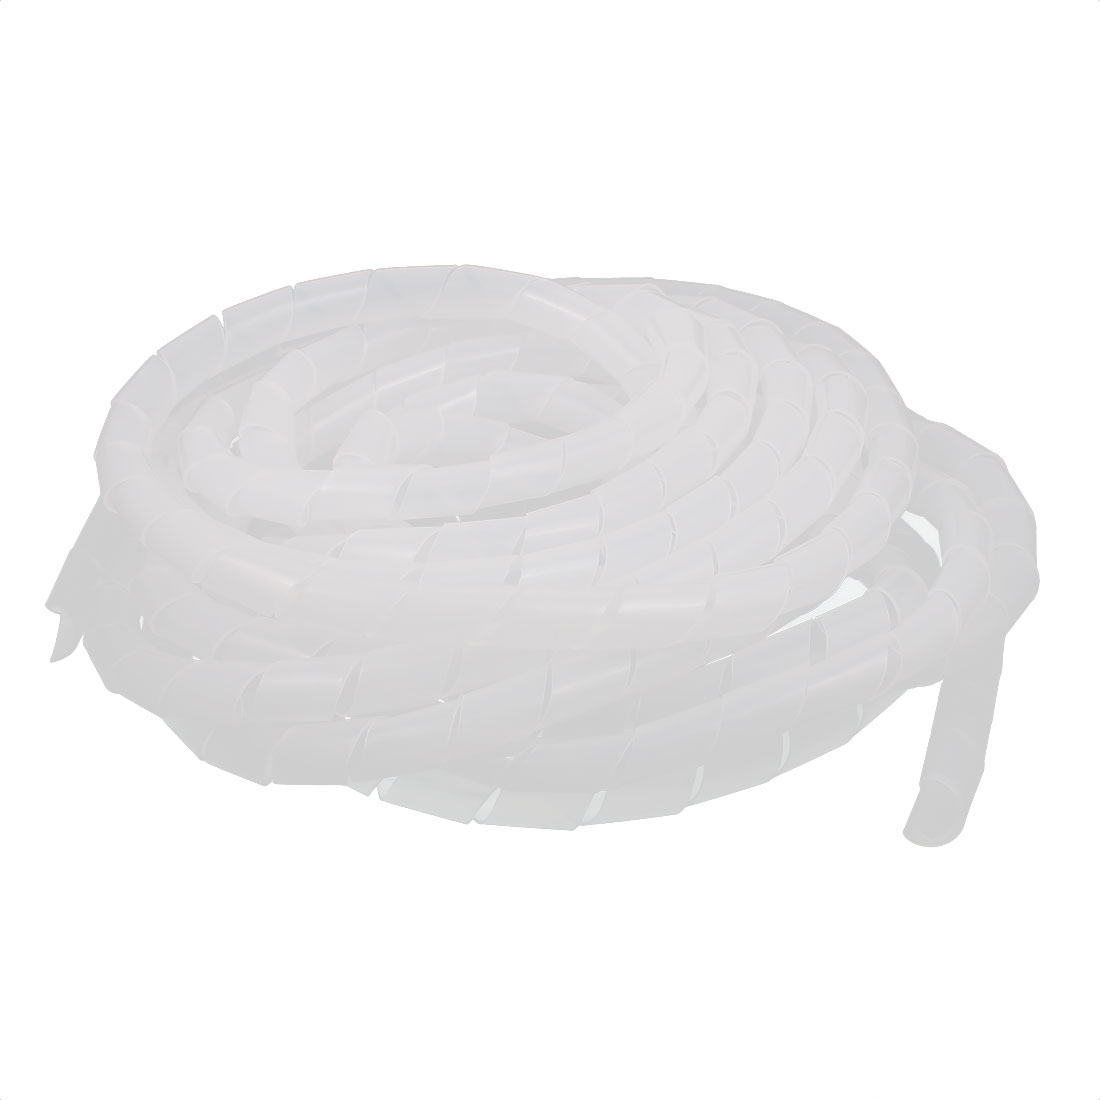 12mm Dia 7.5M Length Cable Wire Tidy Wrap Spiral Wrapping Band Organizer White